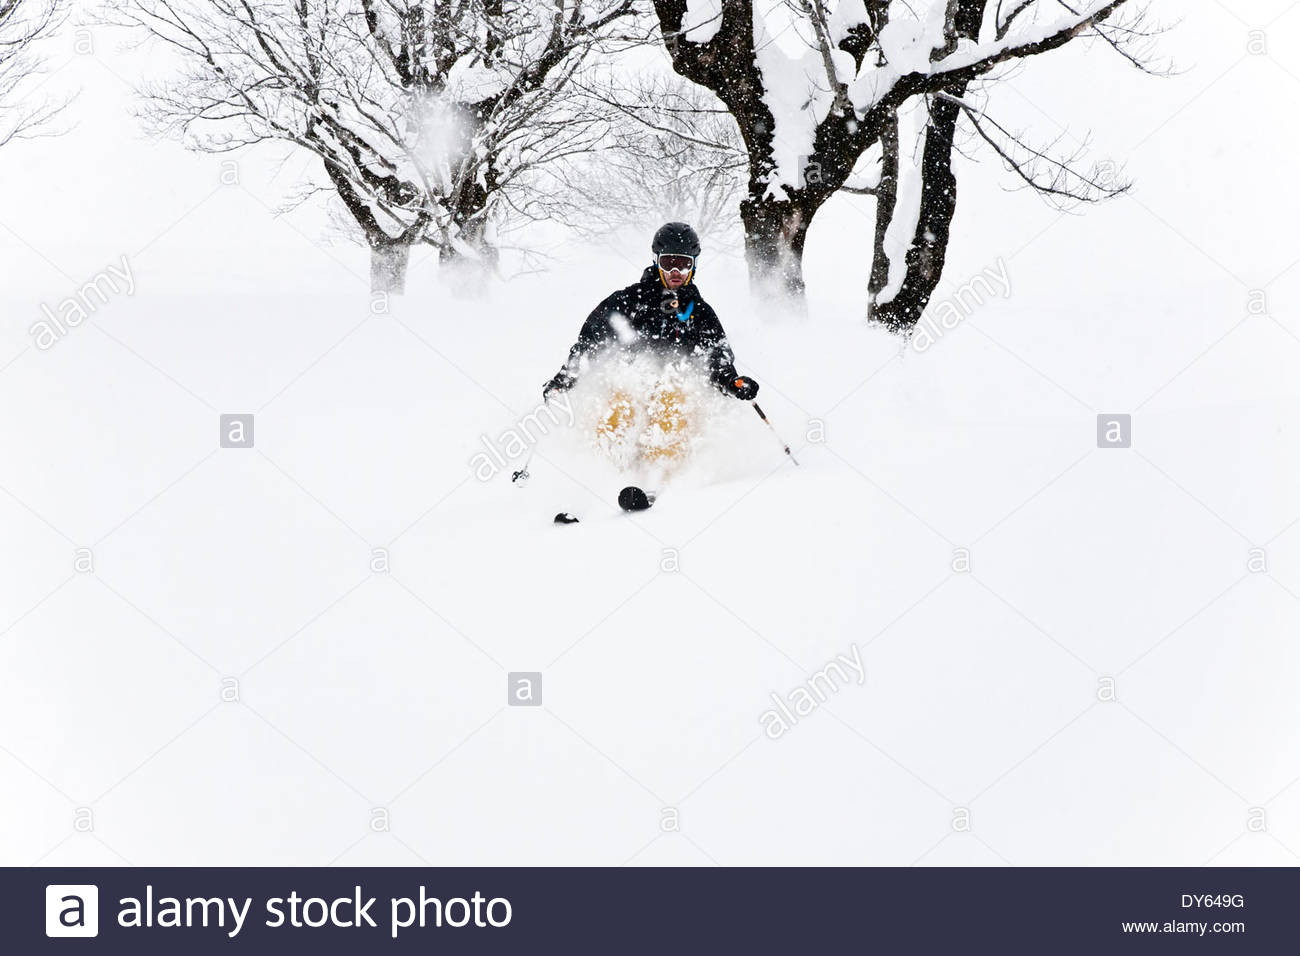 Man downhill skiing, Laliderer Scharte, Risstal, Tyrol, Austria Stock Photo